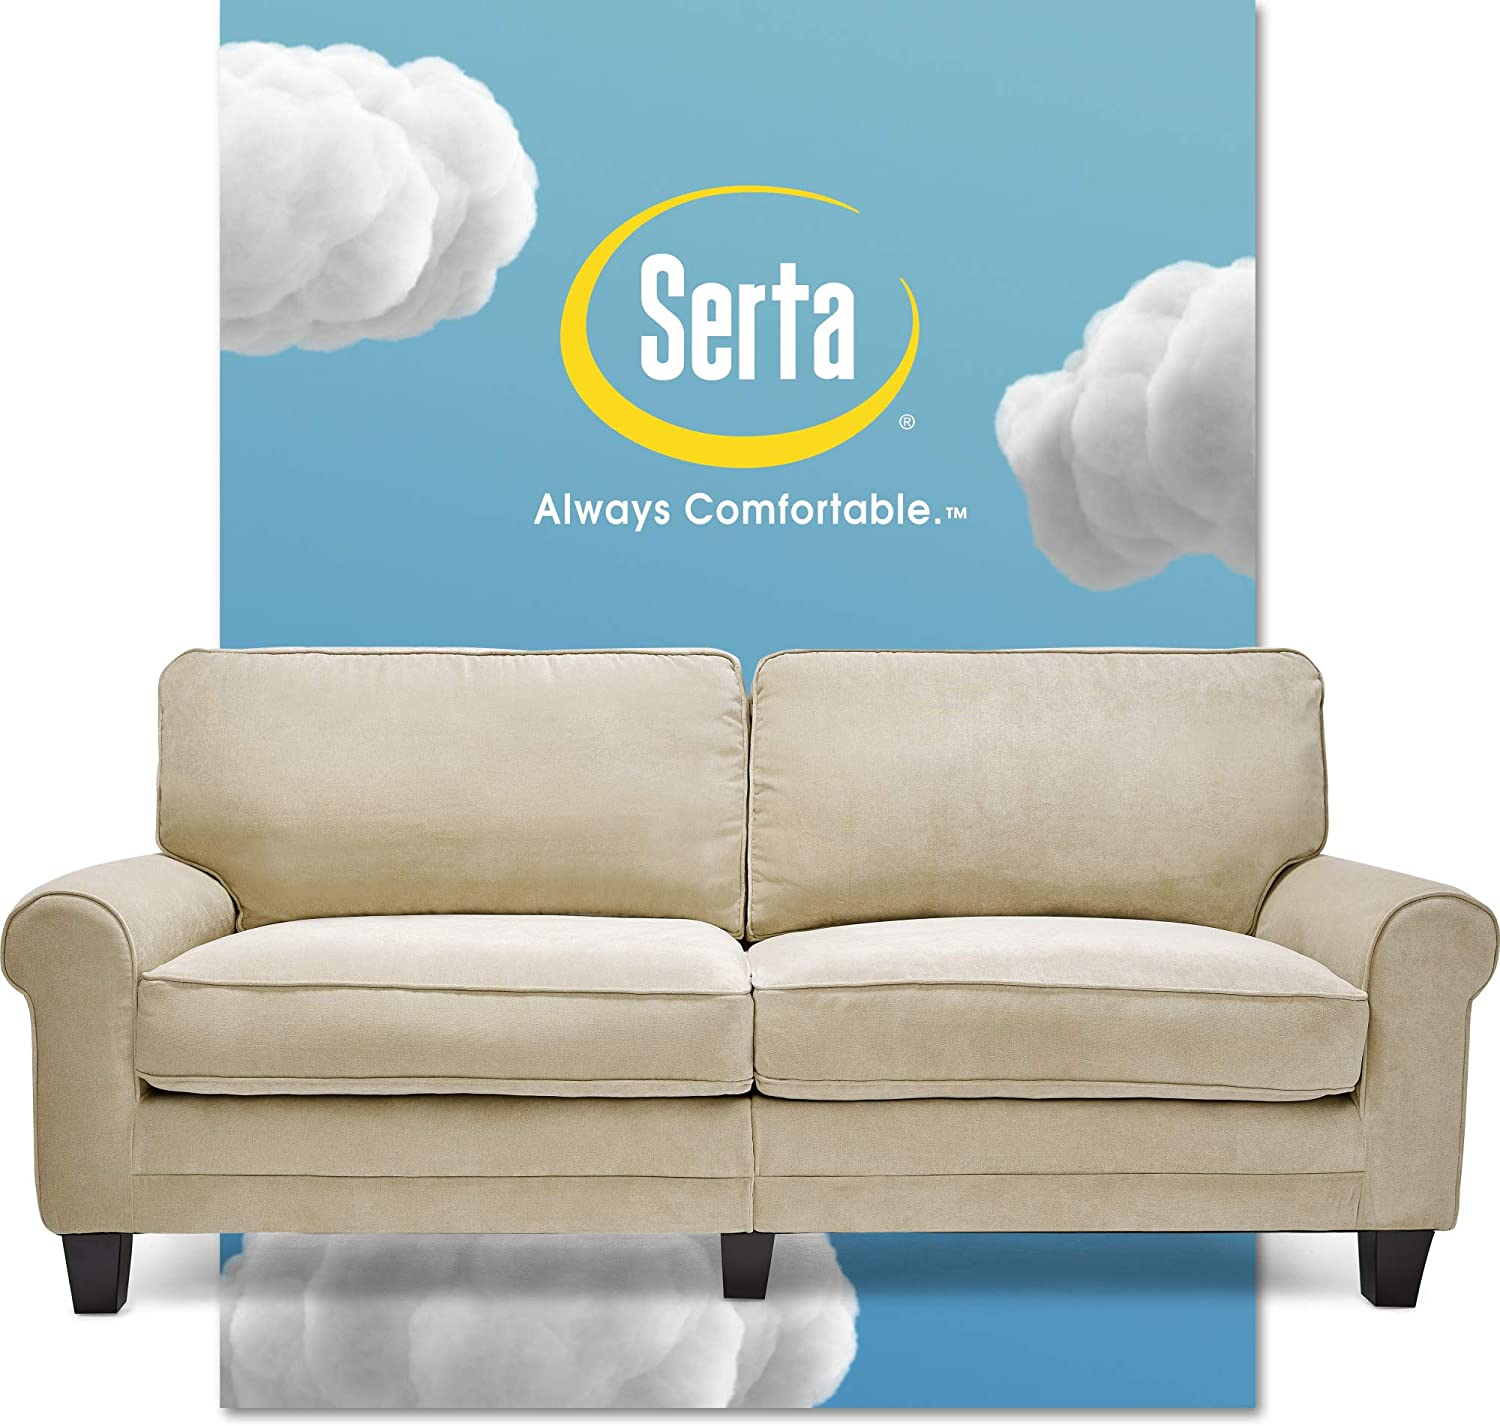 "Serta Copenhagen Sofa Couch for Two People, Pillowed Back Cushions and Rounded Arms, Durable Modern Upholstered Fabric, 78"", Marzipan"